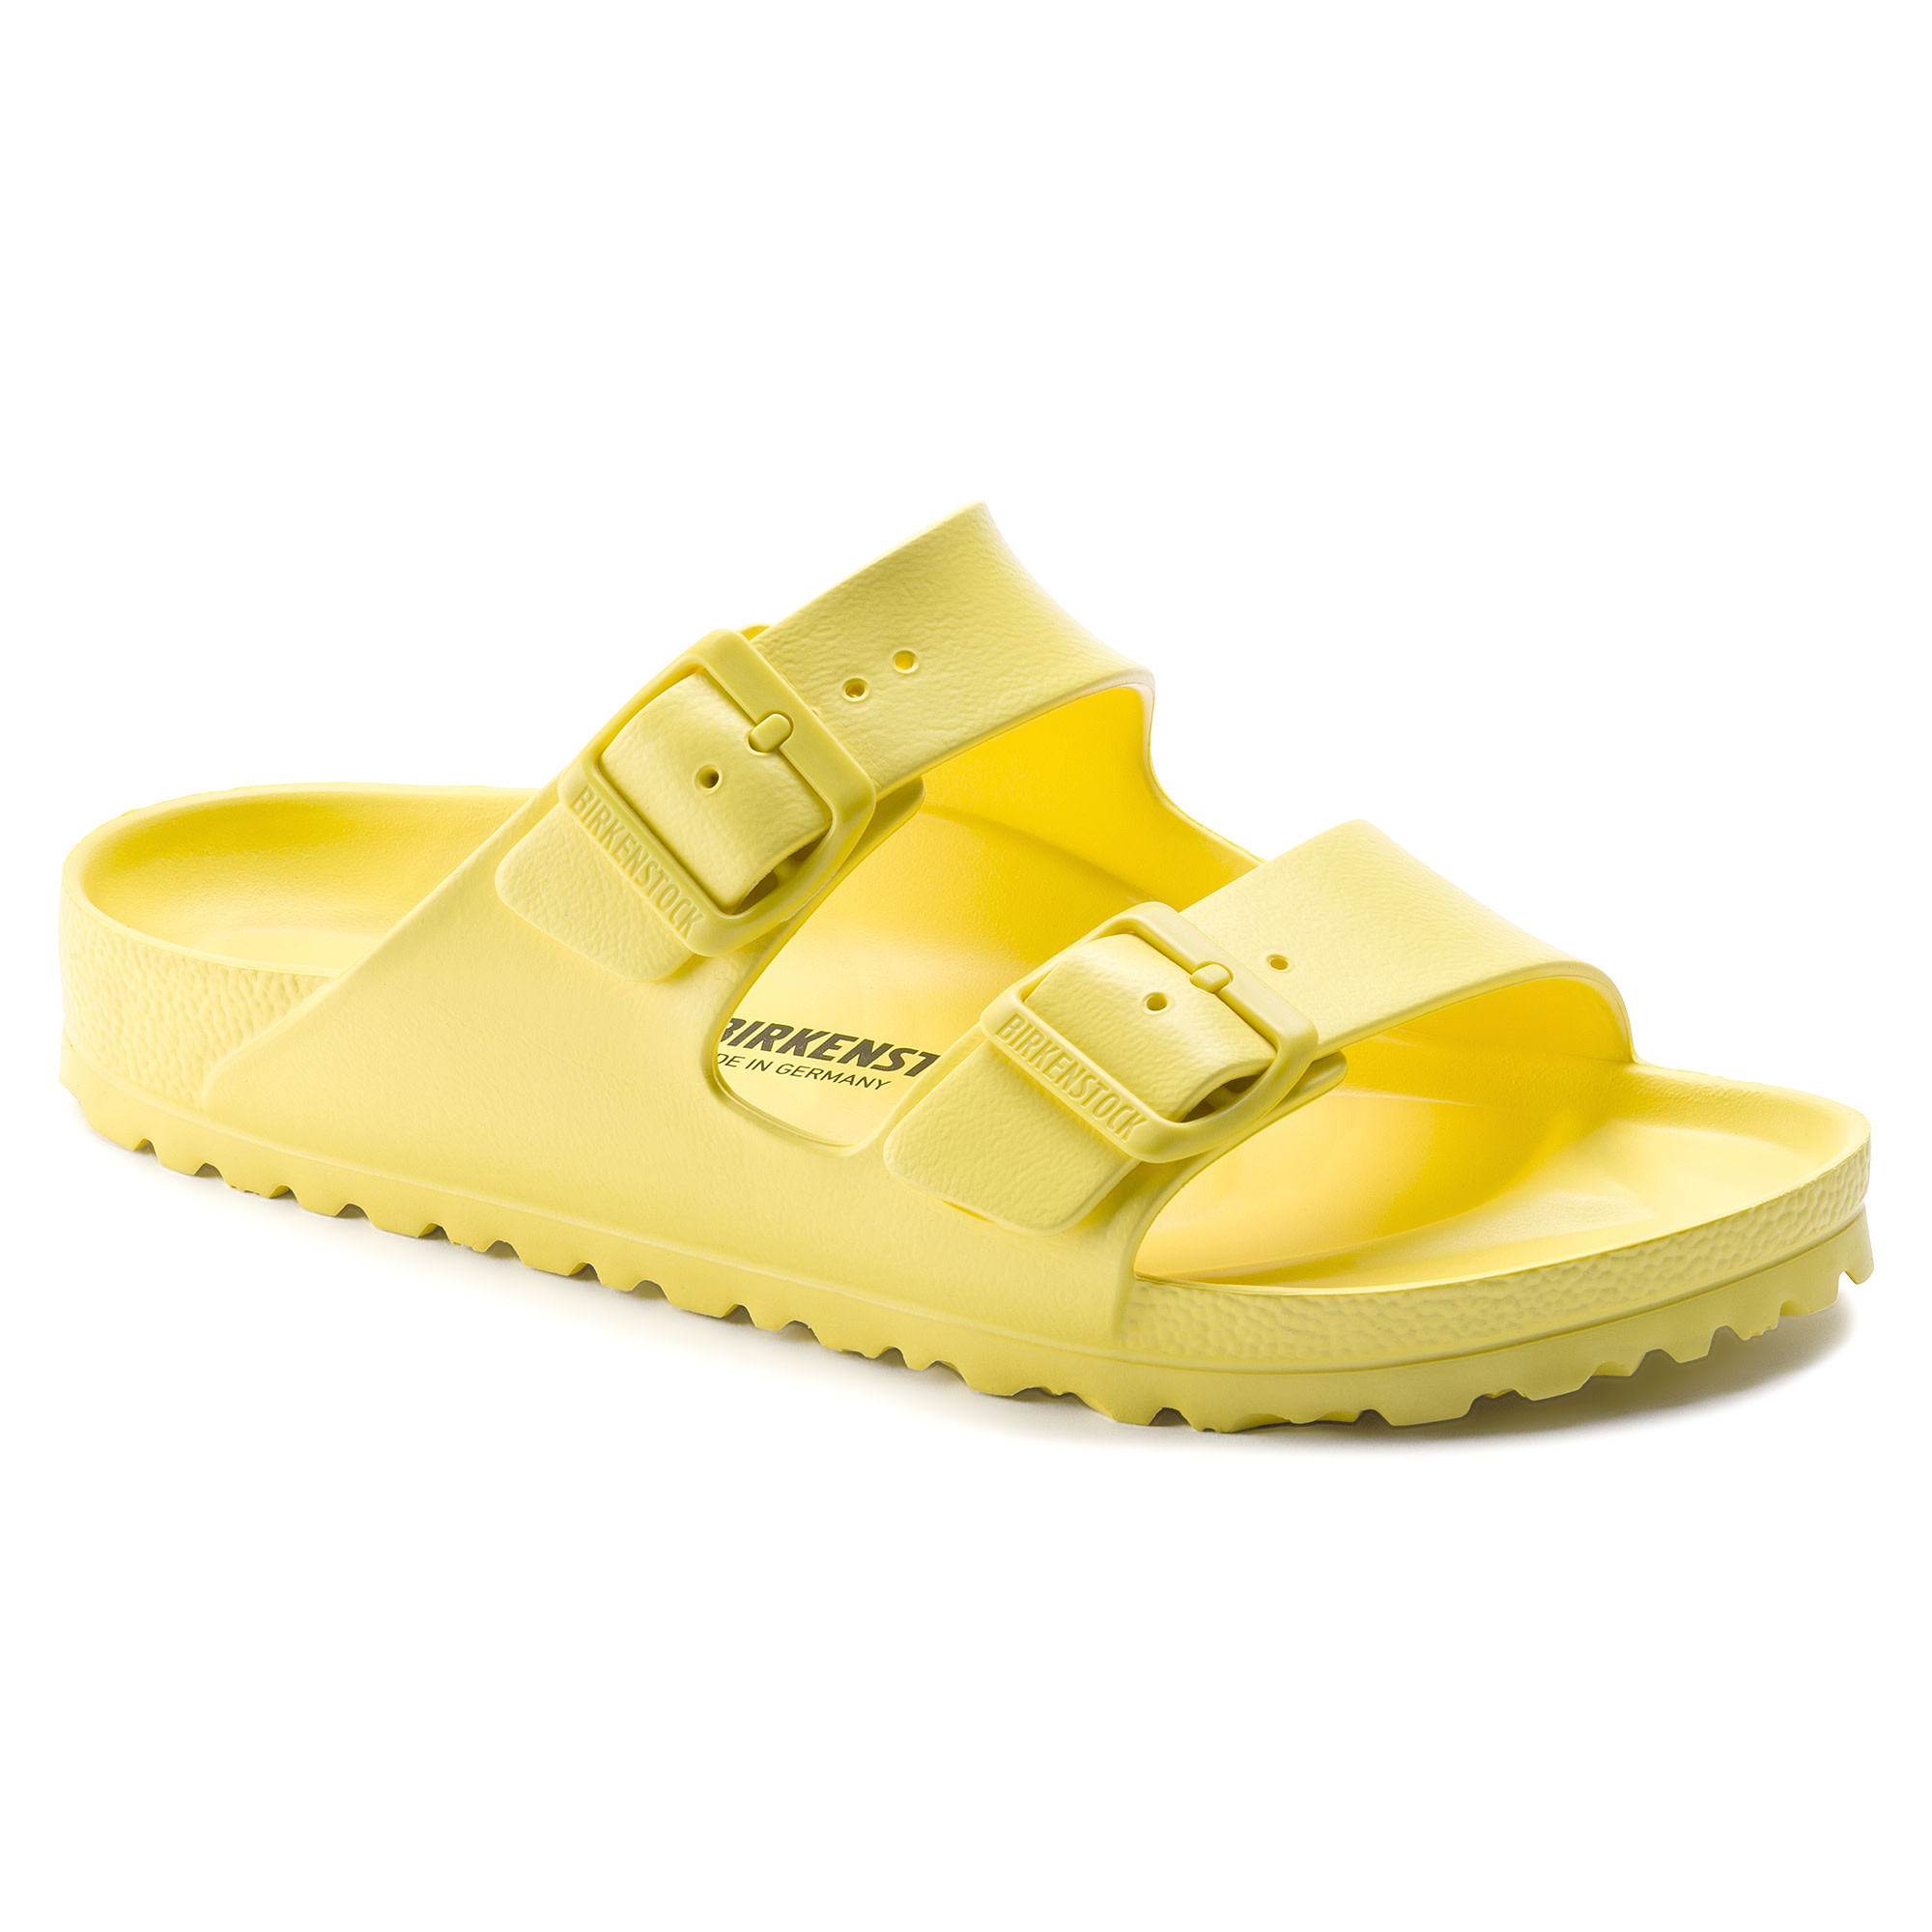 Birkenstock Birkenstock Arizona EVA (Women - Narrow) - Vibrant Yellow